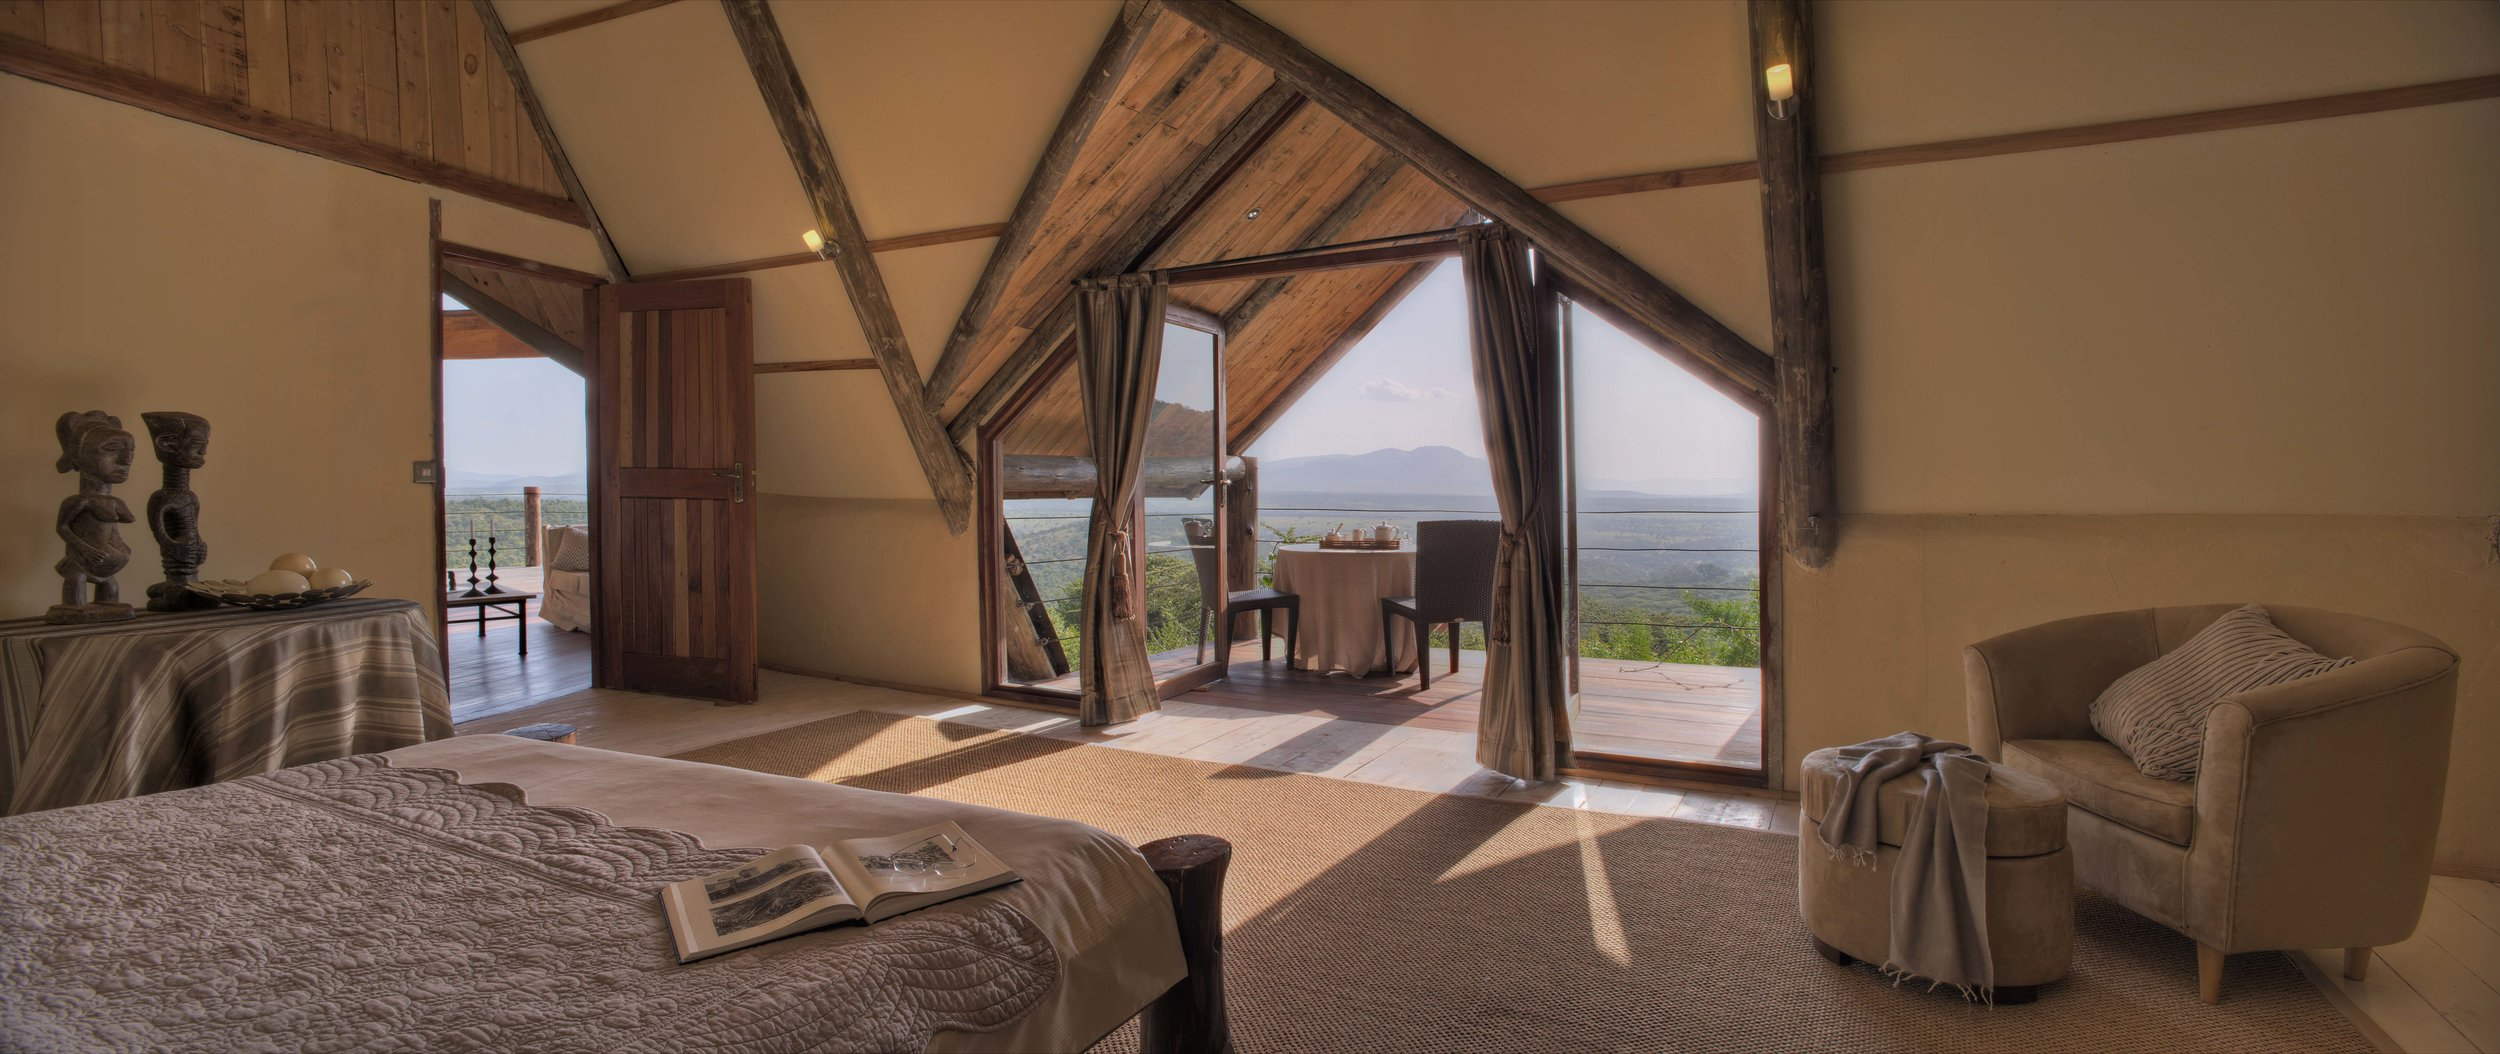 Cottars Private House - Bedroom Upstairs.jpg